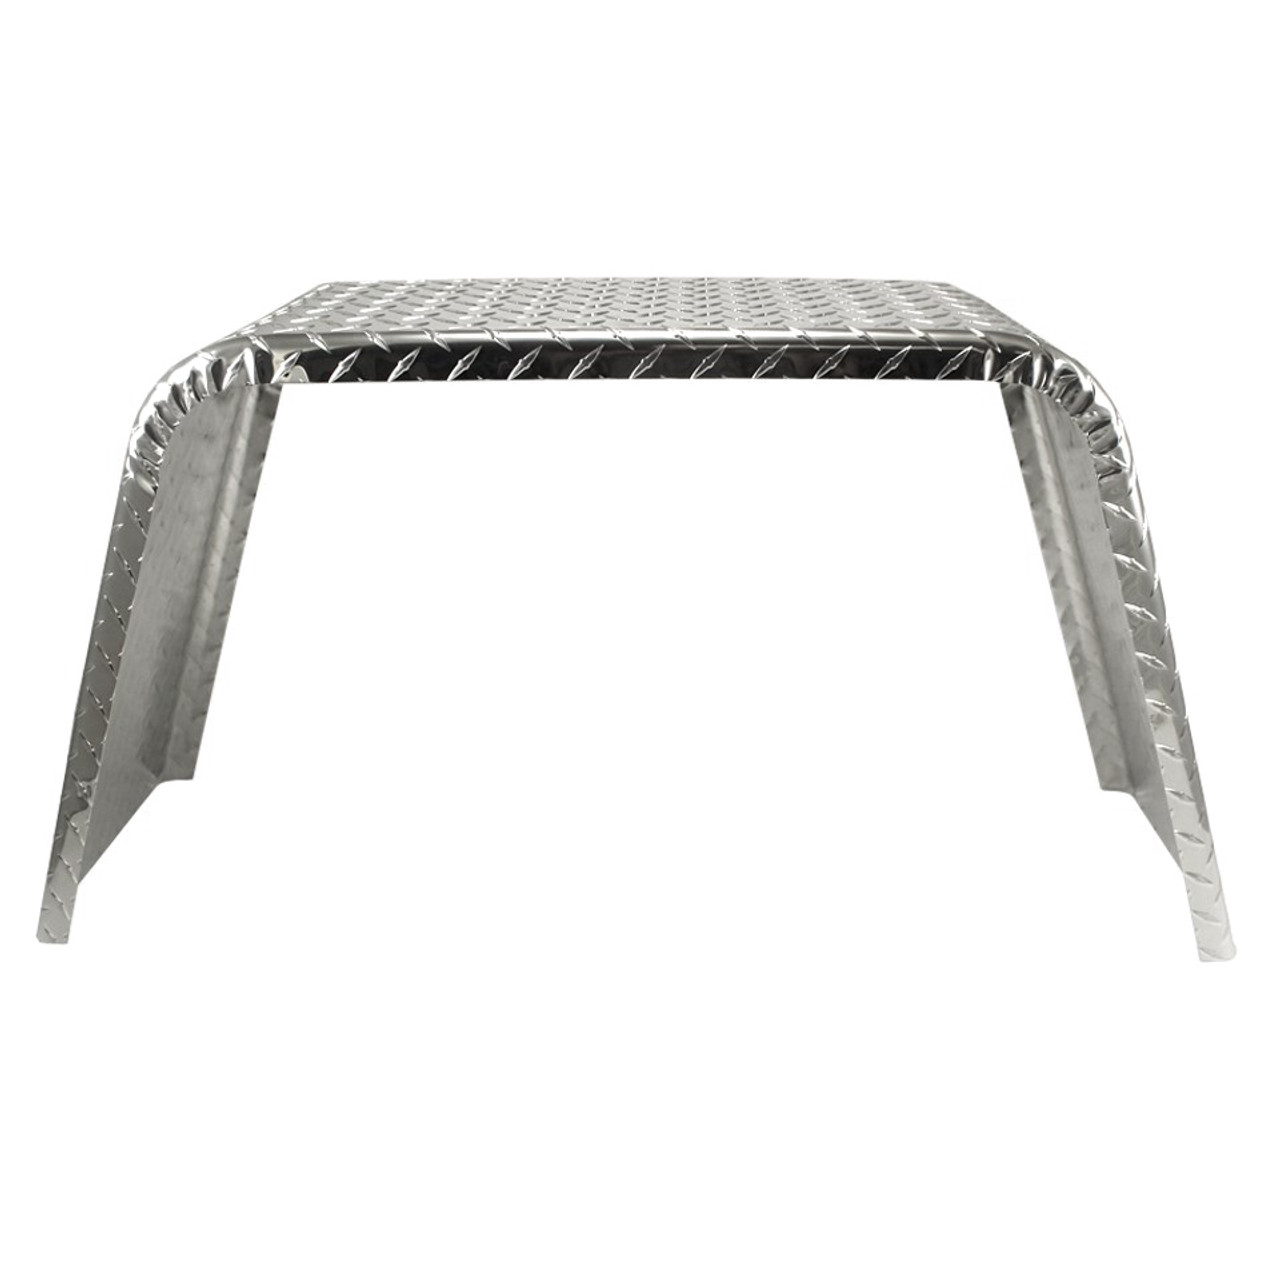 36x10 Single Axle Jeep Style Utility Aluminum Tread Plate Trailer Fender front view